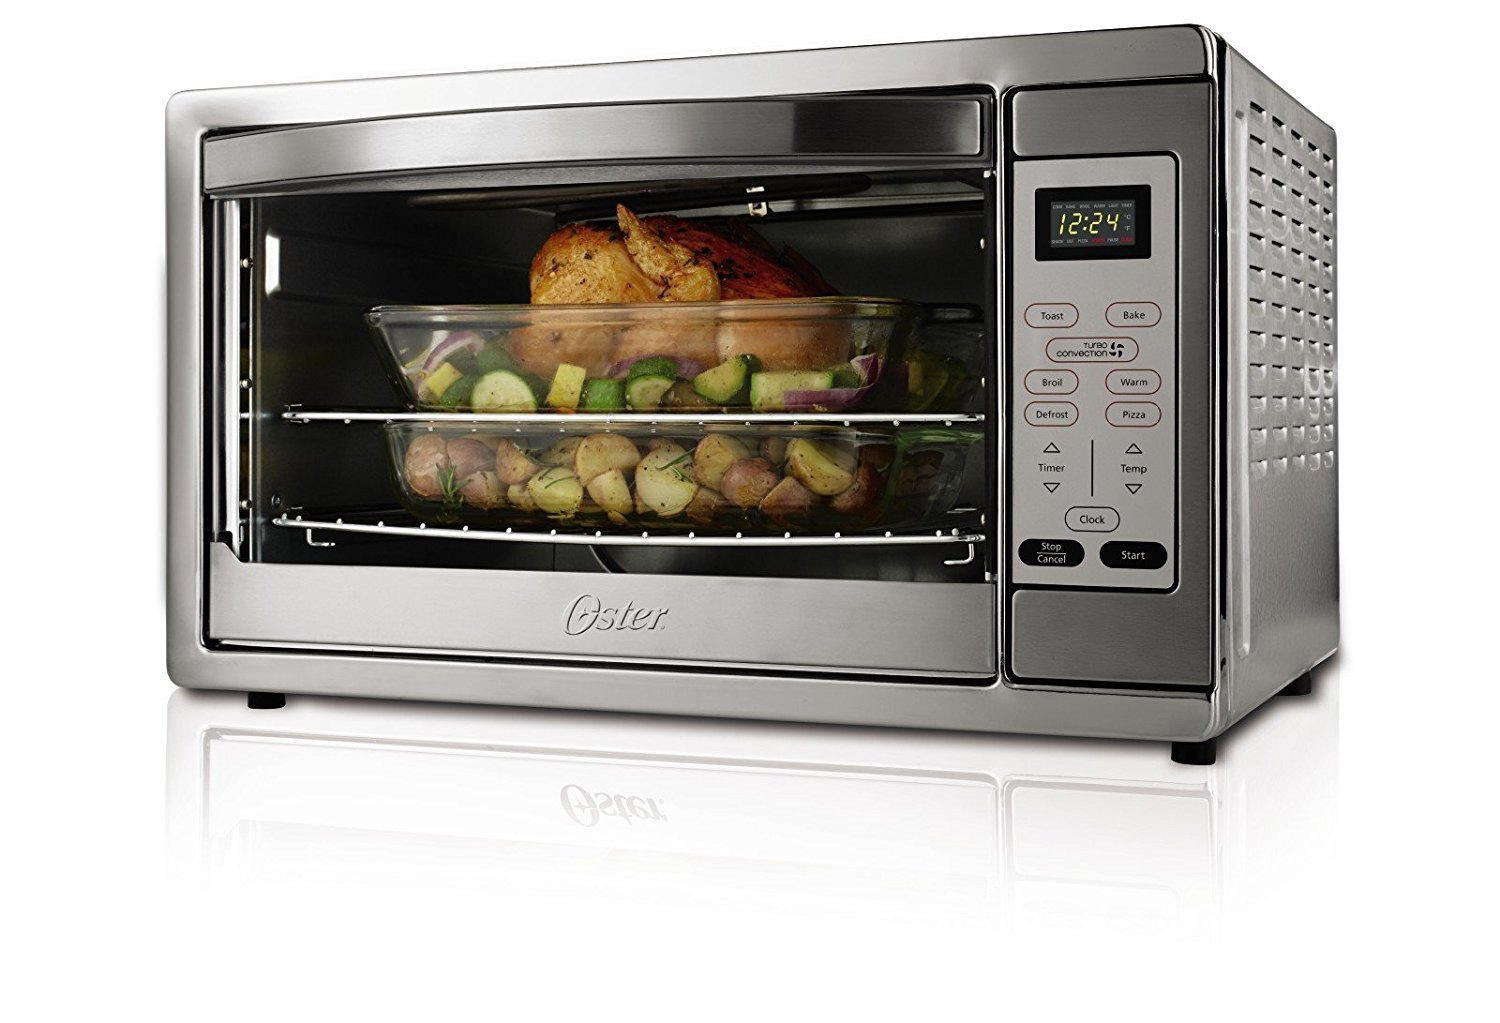 2 x Oster Extra Large Digital Countertop Oven, Stainless Steel, TSSTTVDGXL-SHP